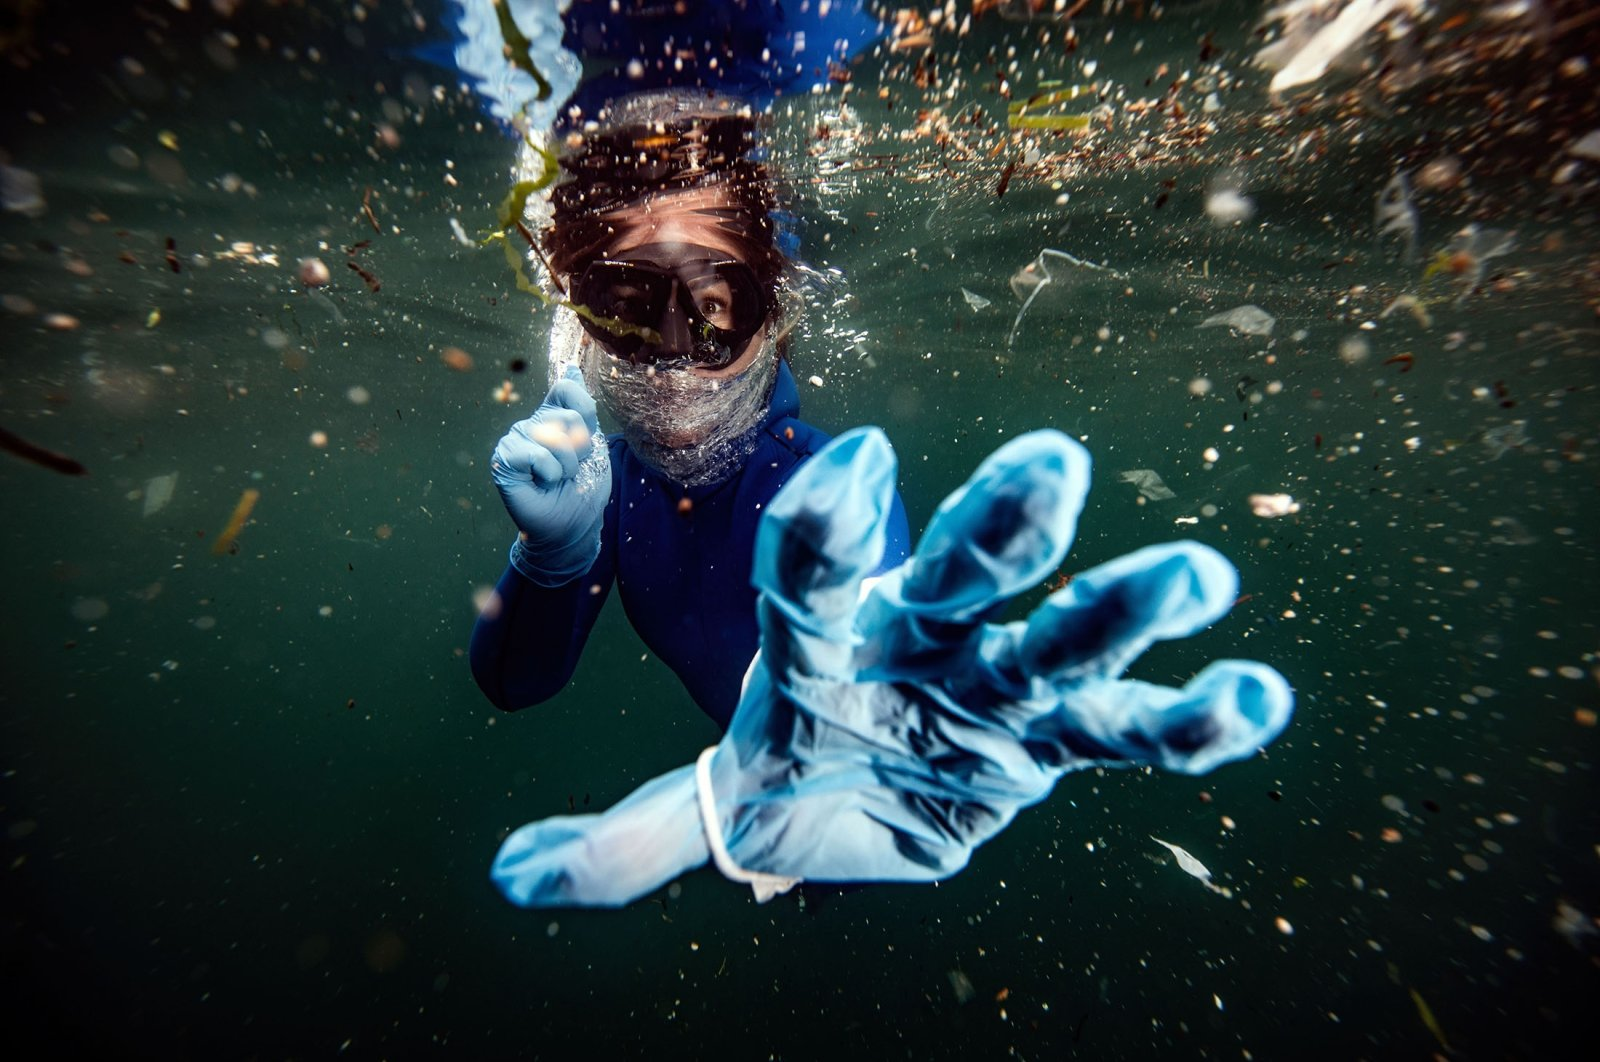 Turkish diver Şahika Ercümen posed for Şebnem Coşkun underwater in the Bosporus Strait to raise awareness about plastic pollution in the seas. (AA Photo)